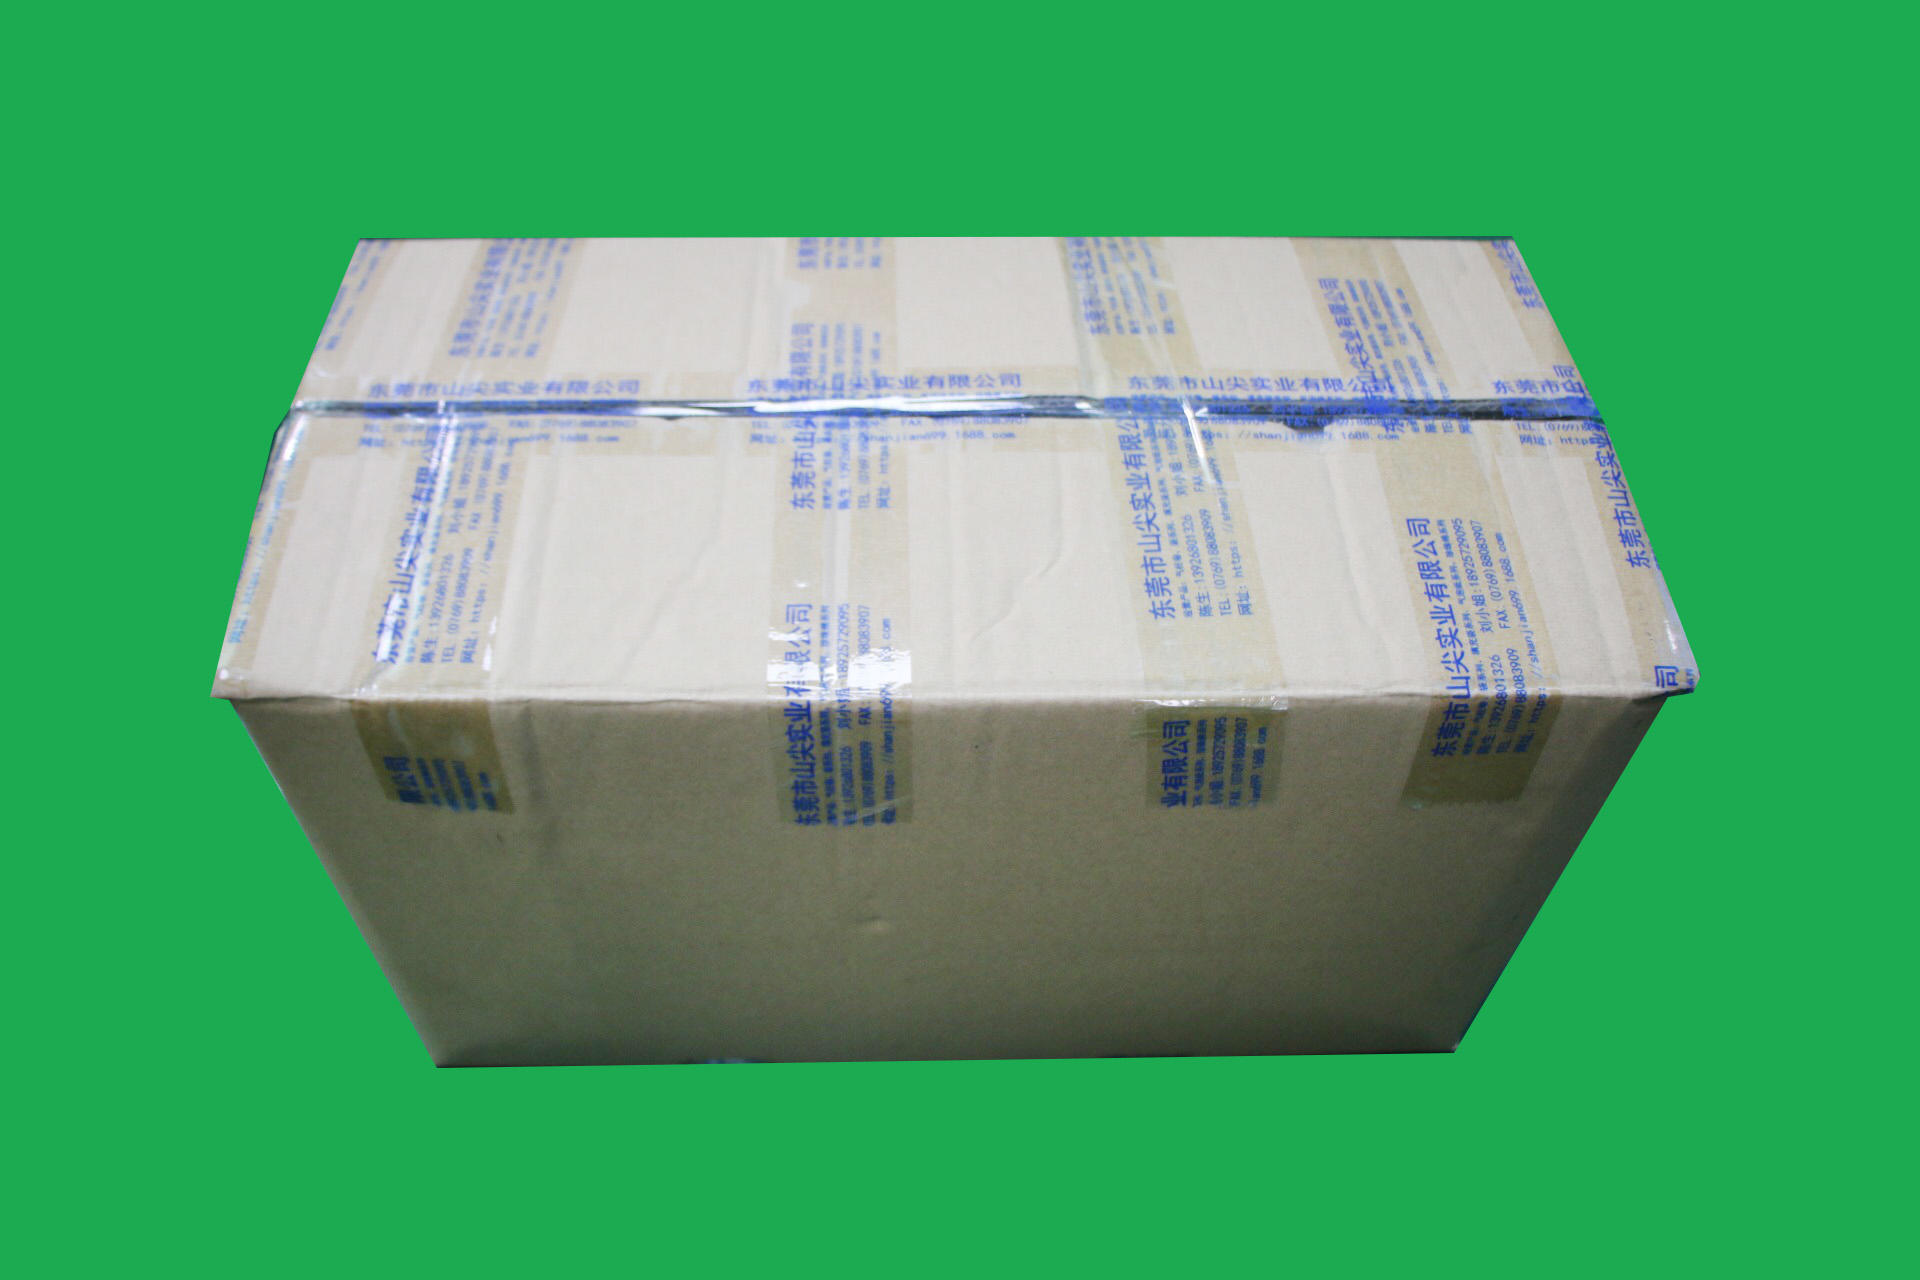 Sunshinepack Top dunnage air bags manufacturer Suppliers for transportation